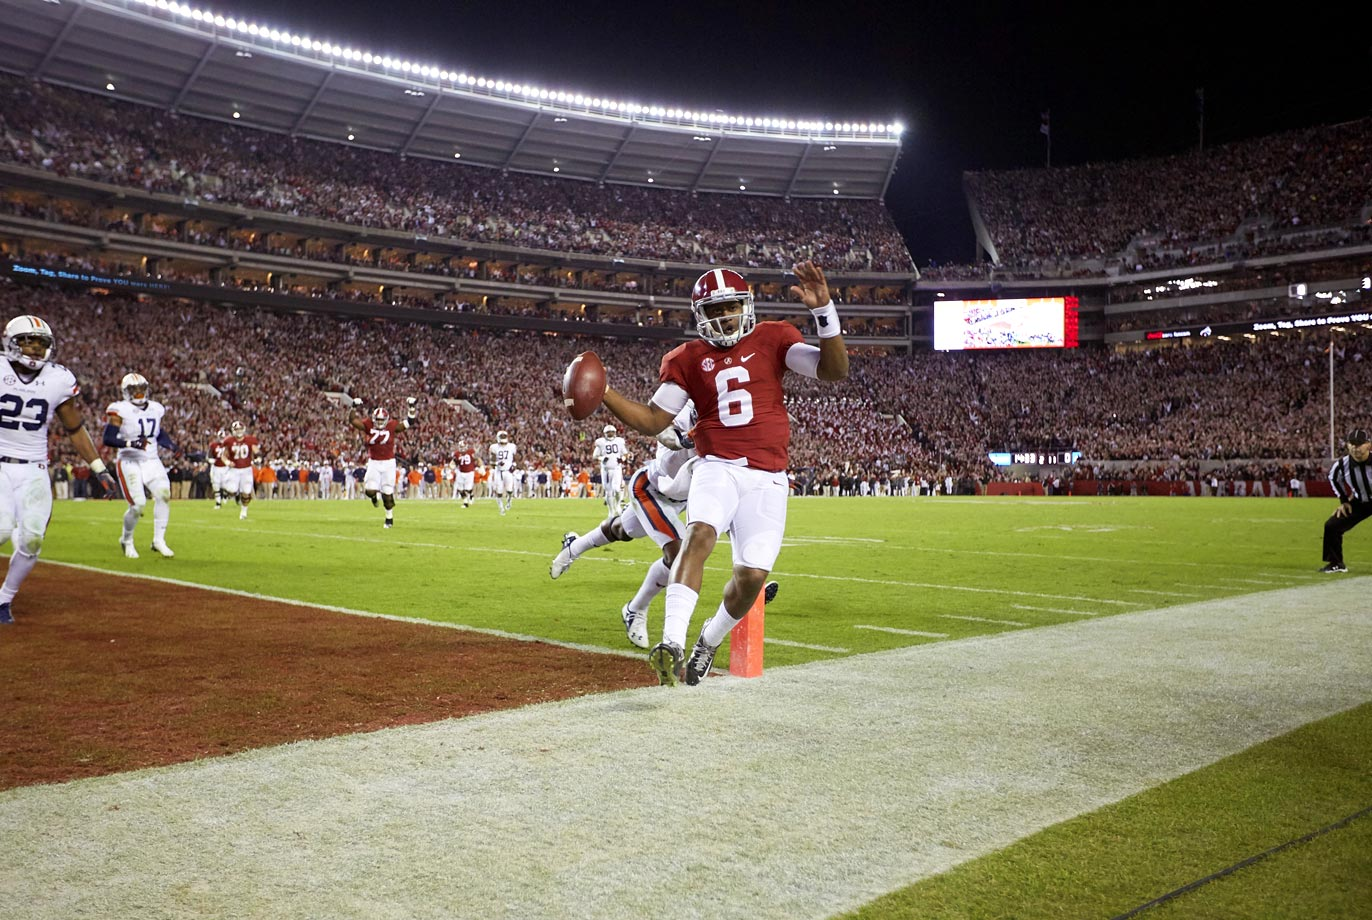 Auburn seemed in position to upset the Tide after taking a 33-21 lead early in the third quarter. But Bama hung 34 second-half points to keep its College Football Playoff hopes alive. Sims was the star: He went 20-of-27 for 312 yards with four touchdowns and three interceptions, and rushed for 23 yards with a score.